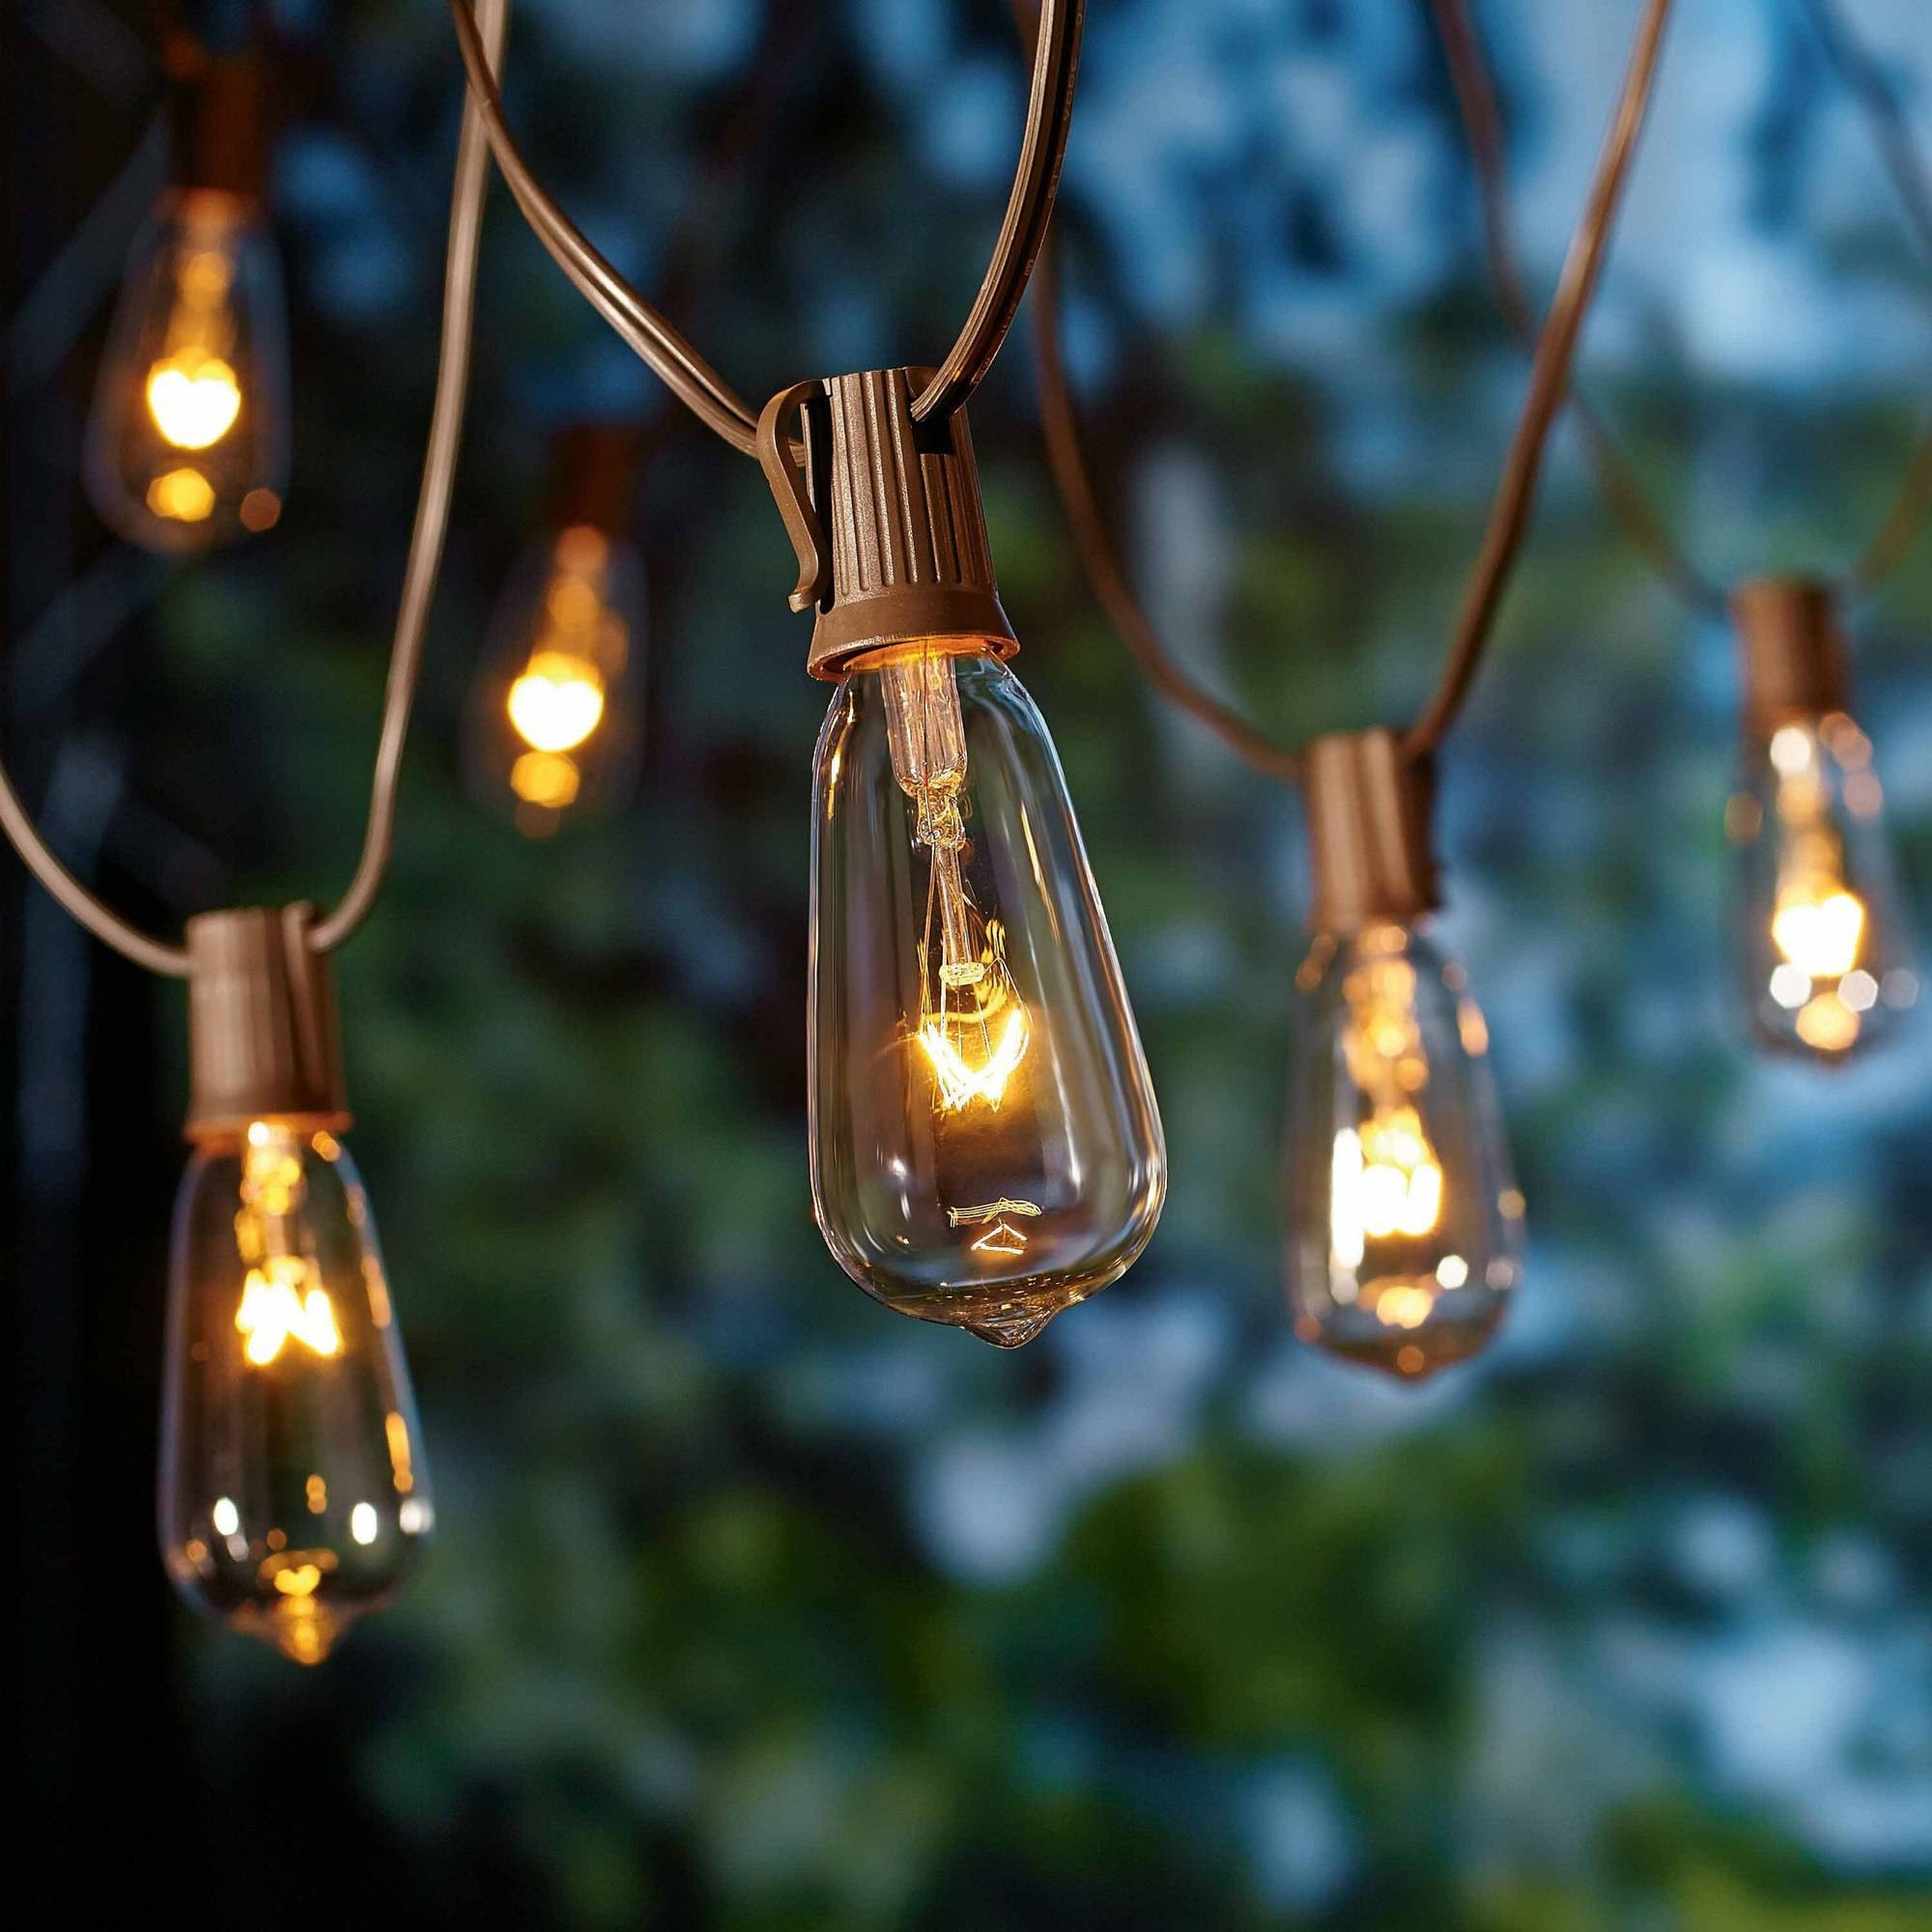 Better Homes And Gardens Outdoor Glass Edison String Lights, 10 With Regard To Best And Newest Walmart Outdoor Lanterns (View 2 of 20)